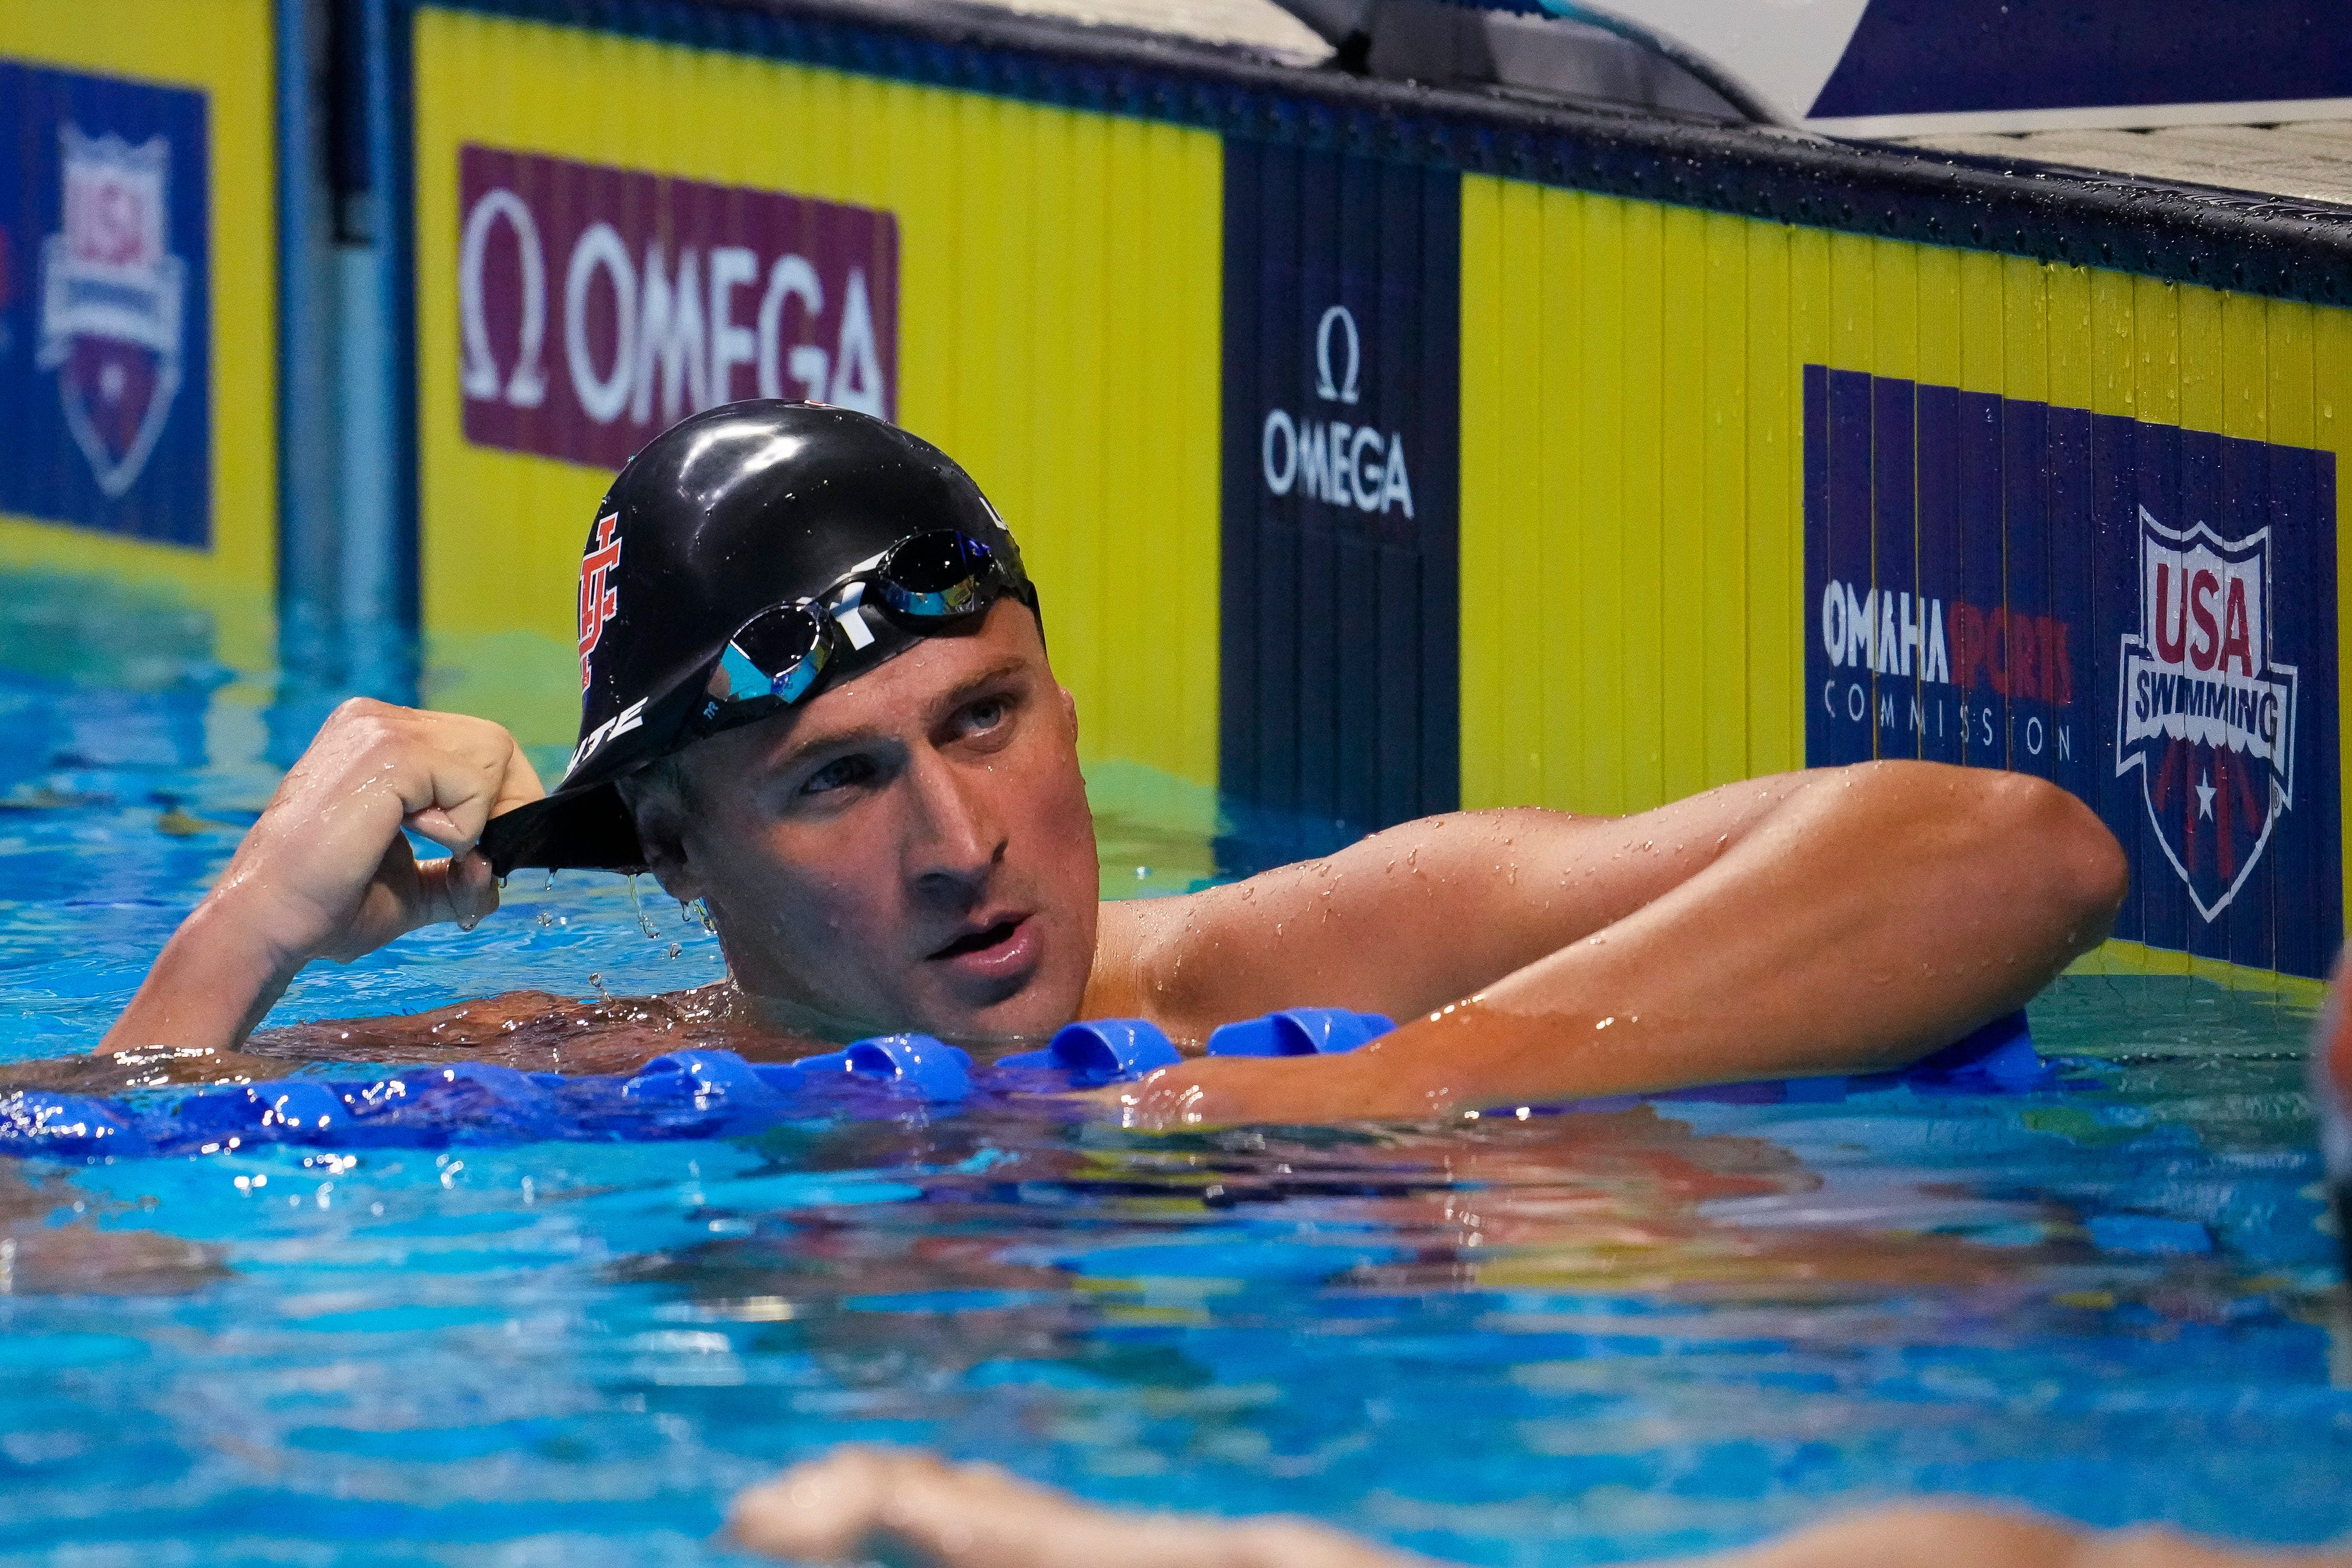 Ryan Lochte falls short in making Olympic team for Tokyo, finishes seventh in 200 IM